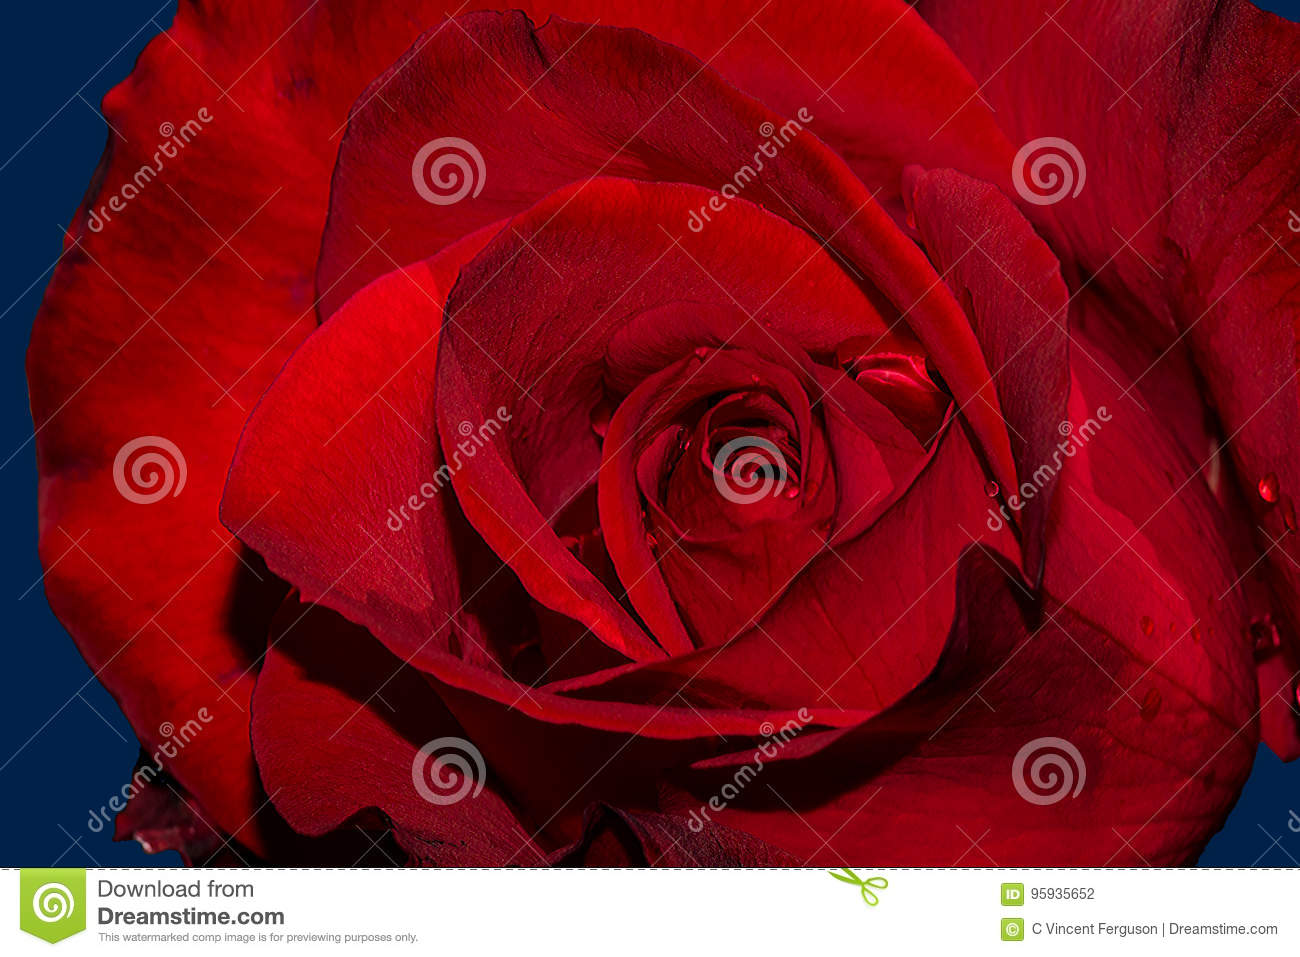 Olympiad Rose stock photo. Image of color, white, transitions - 95935652